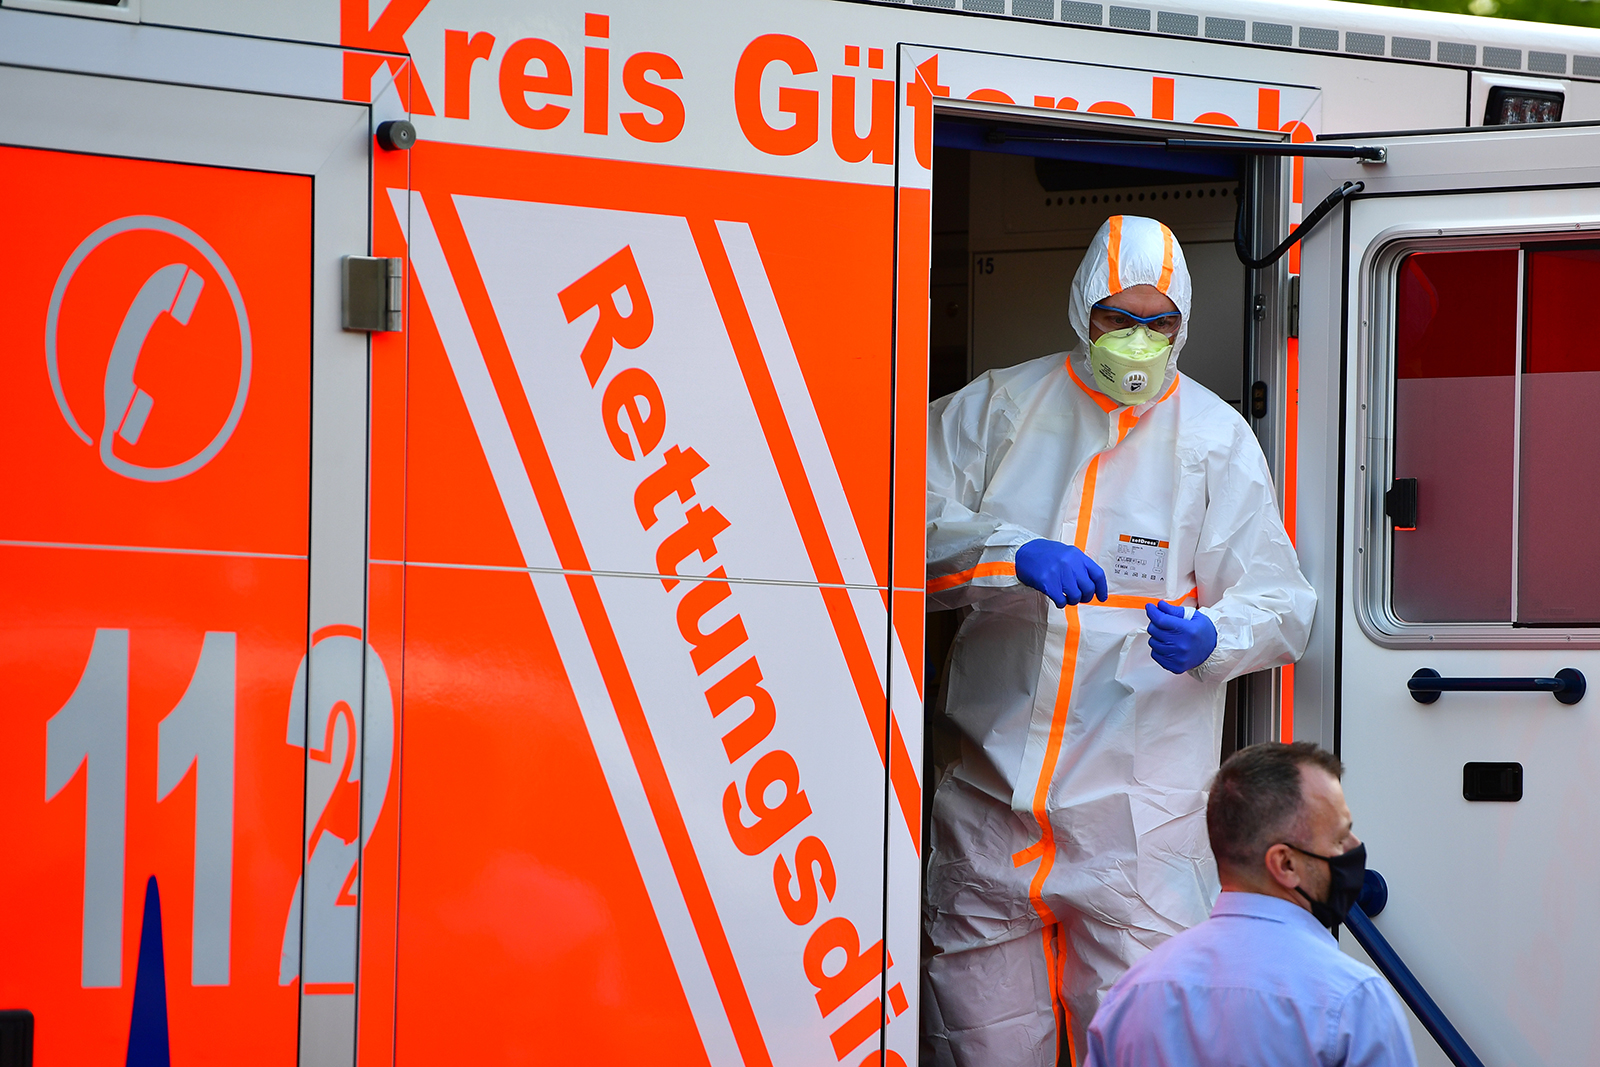 A paramedic wearing full body protection stands inside an ambulance on June 20, in Verl, near Guetersloh, Germany.